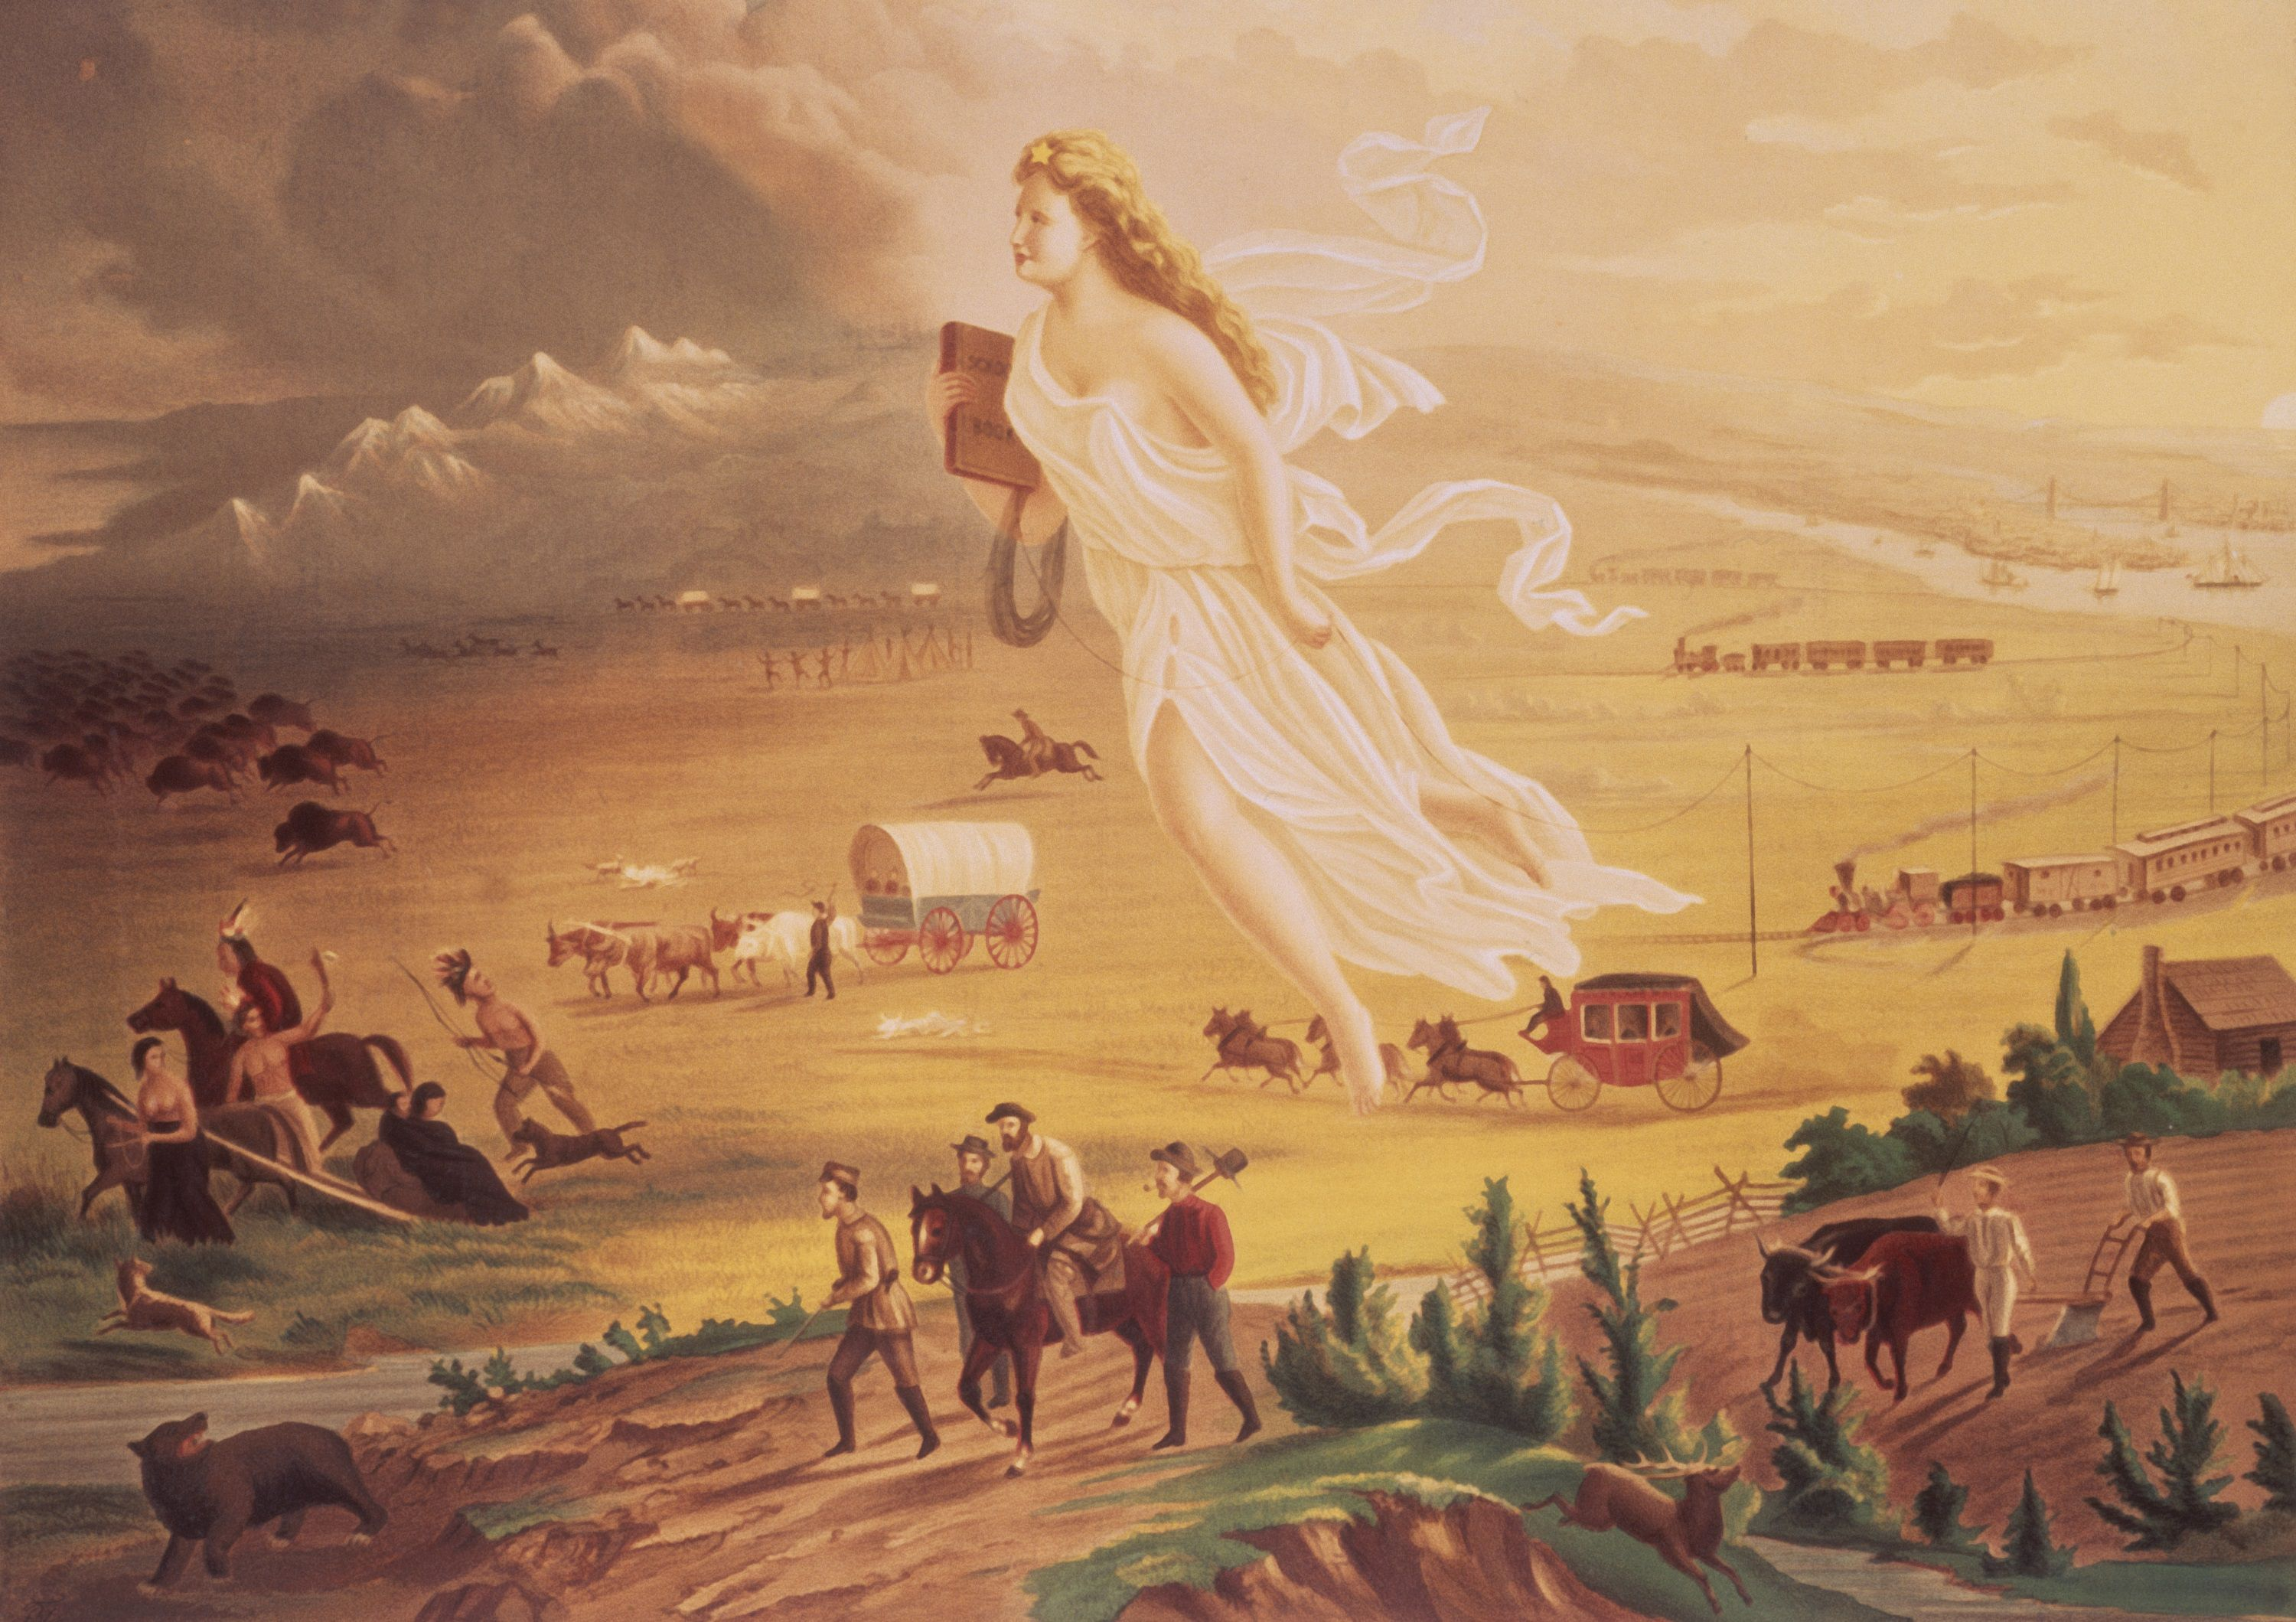 a discussion on manifest destiny and american borders expansion Should the united states enter a new era of manifest destiny and further expand american for a town hall discussion the question of an american.